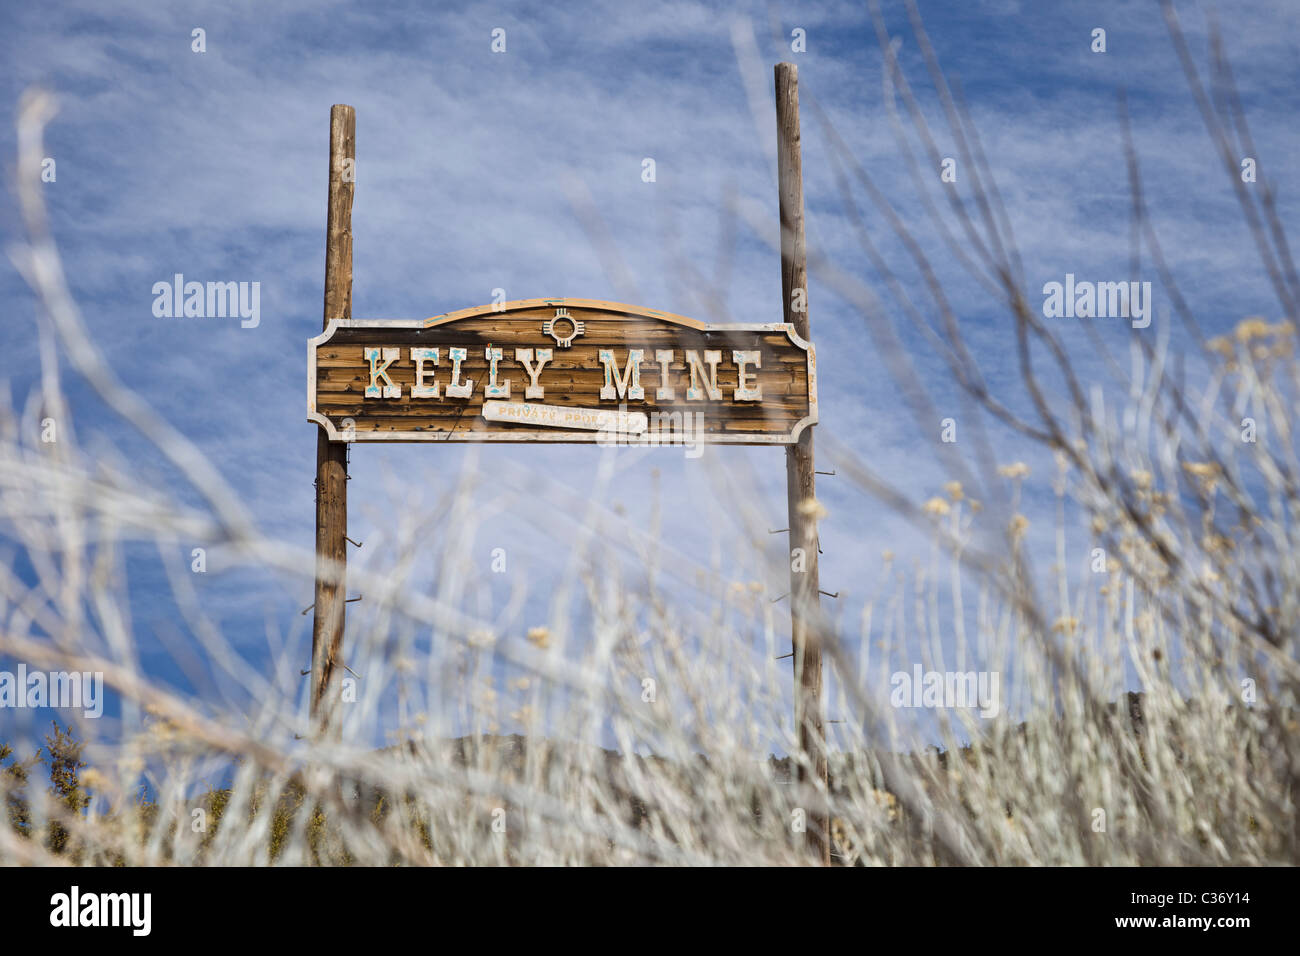 Town signpost at the Kelly Mine Ghost Town in Socorro County, New Mexico, USA. - Stock Image